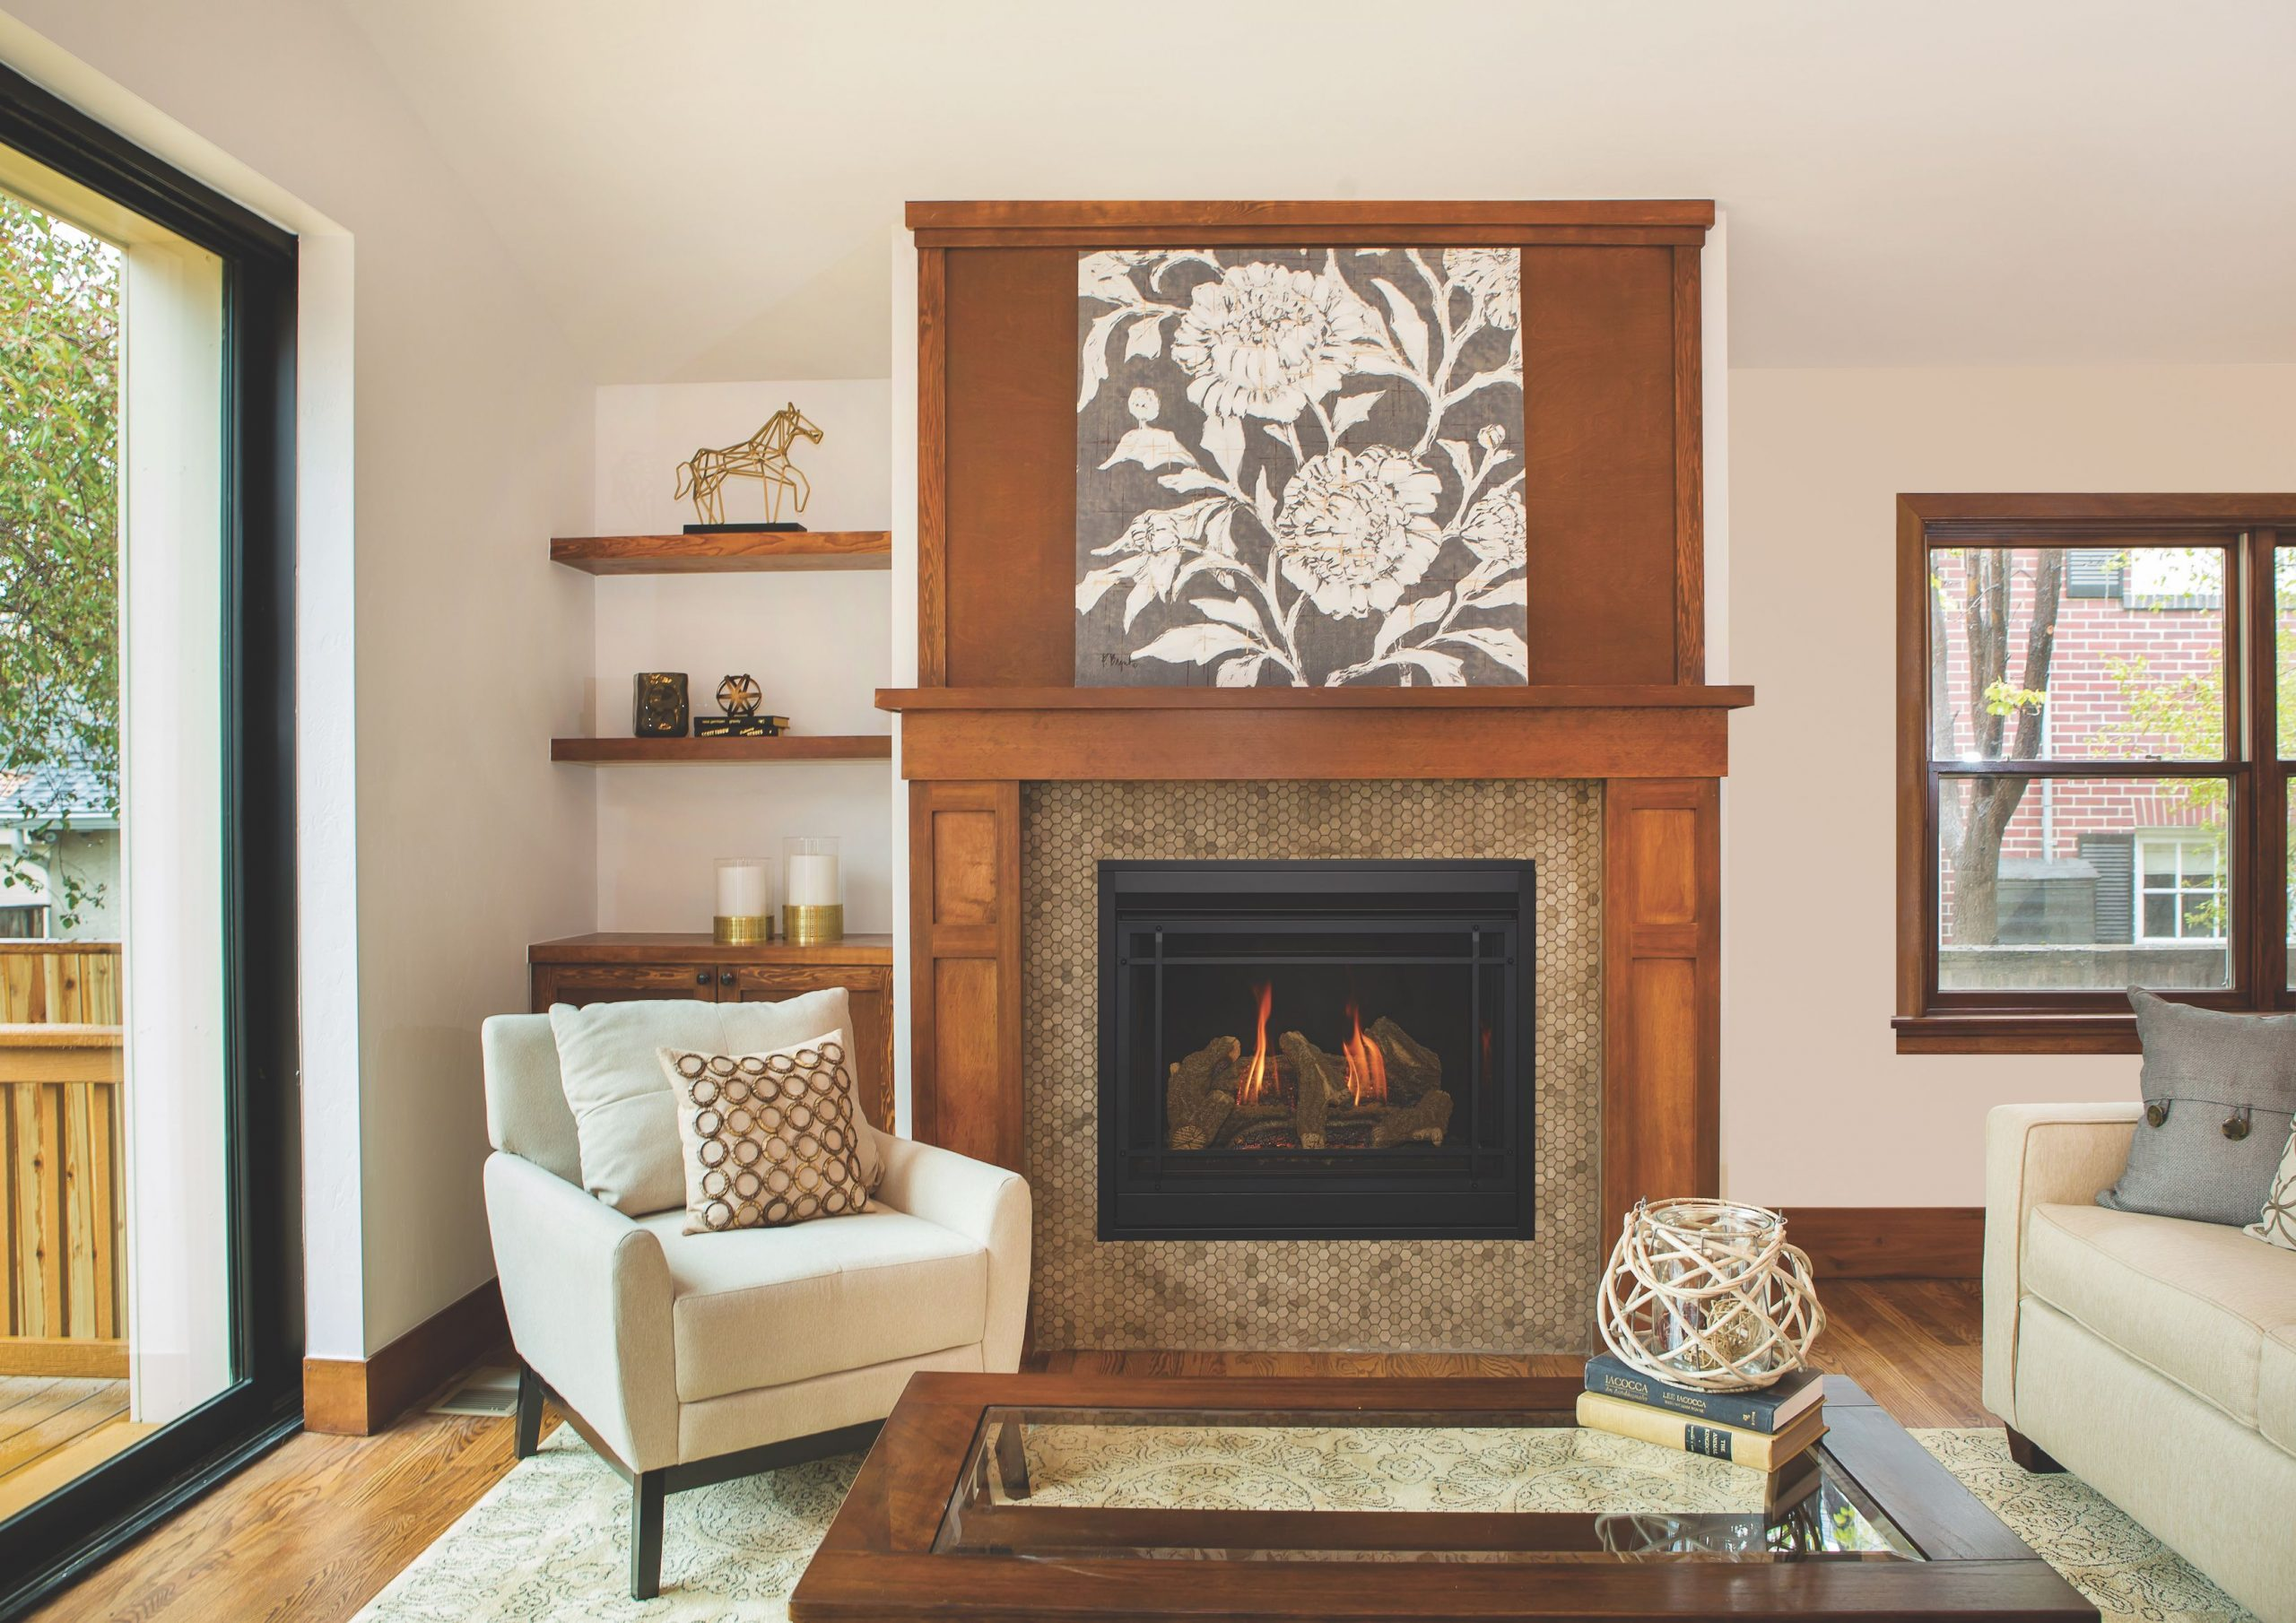 3 Things To Do With Your Fireplace in Summer